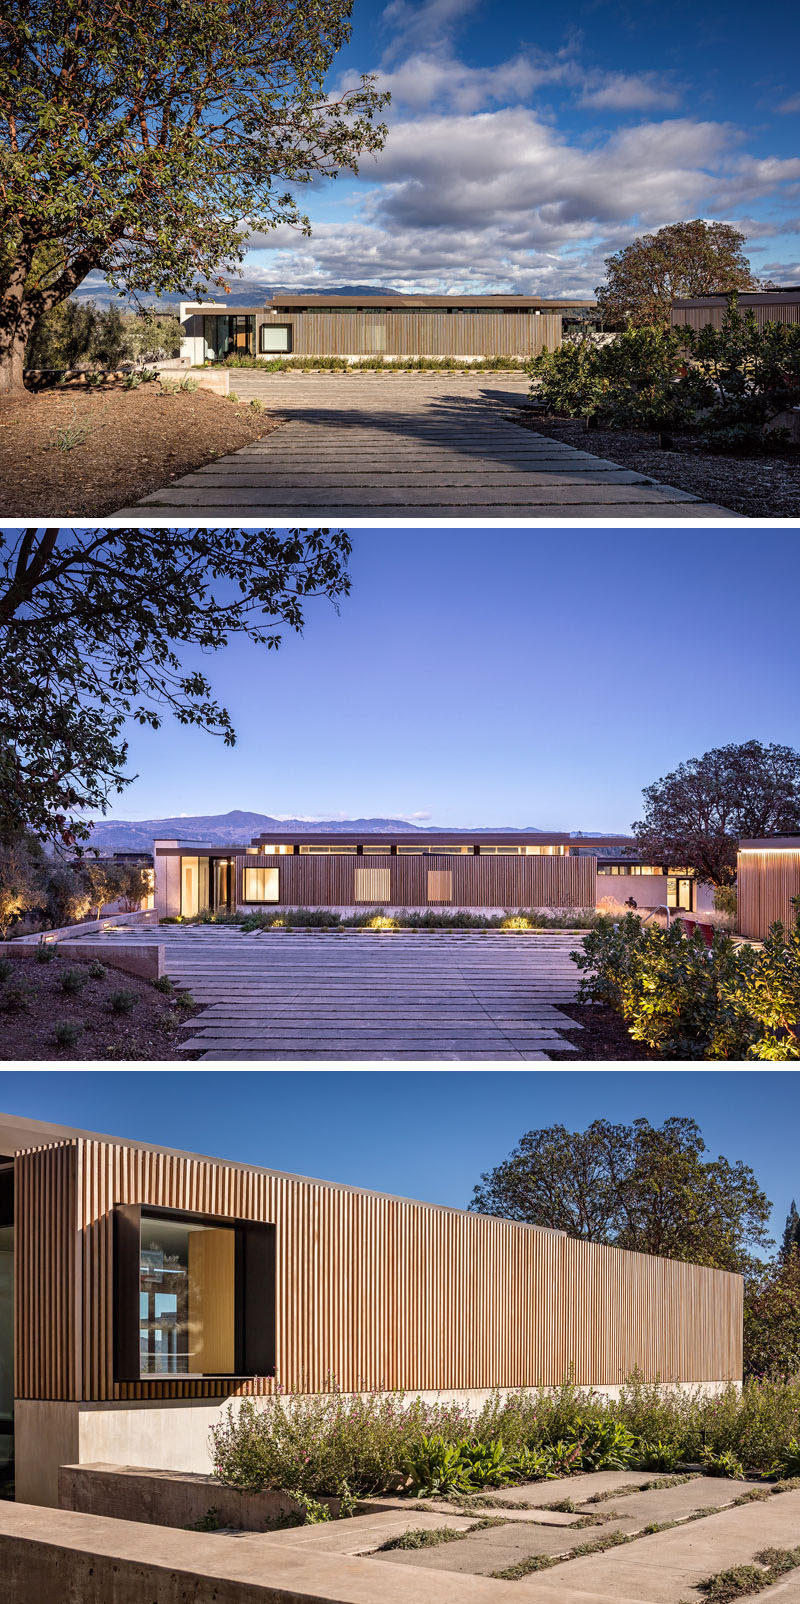 Upon arrival at this modern house, the driveway expands to the width of the house that's covered in wood slats with protruding window frames. #ModernHouse #Driveway #WoodFacade #Windows